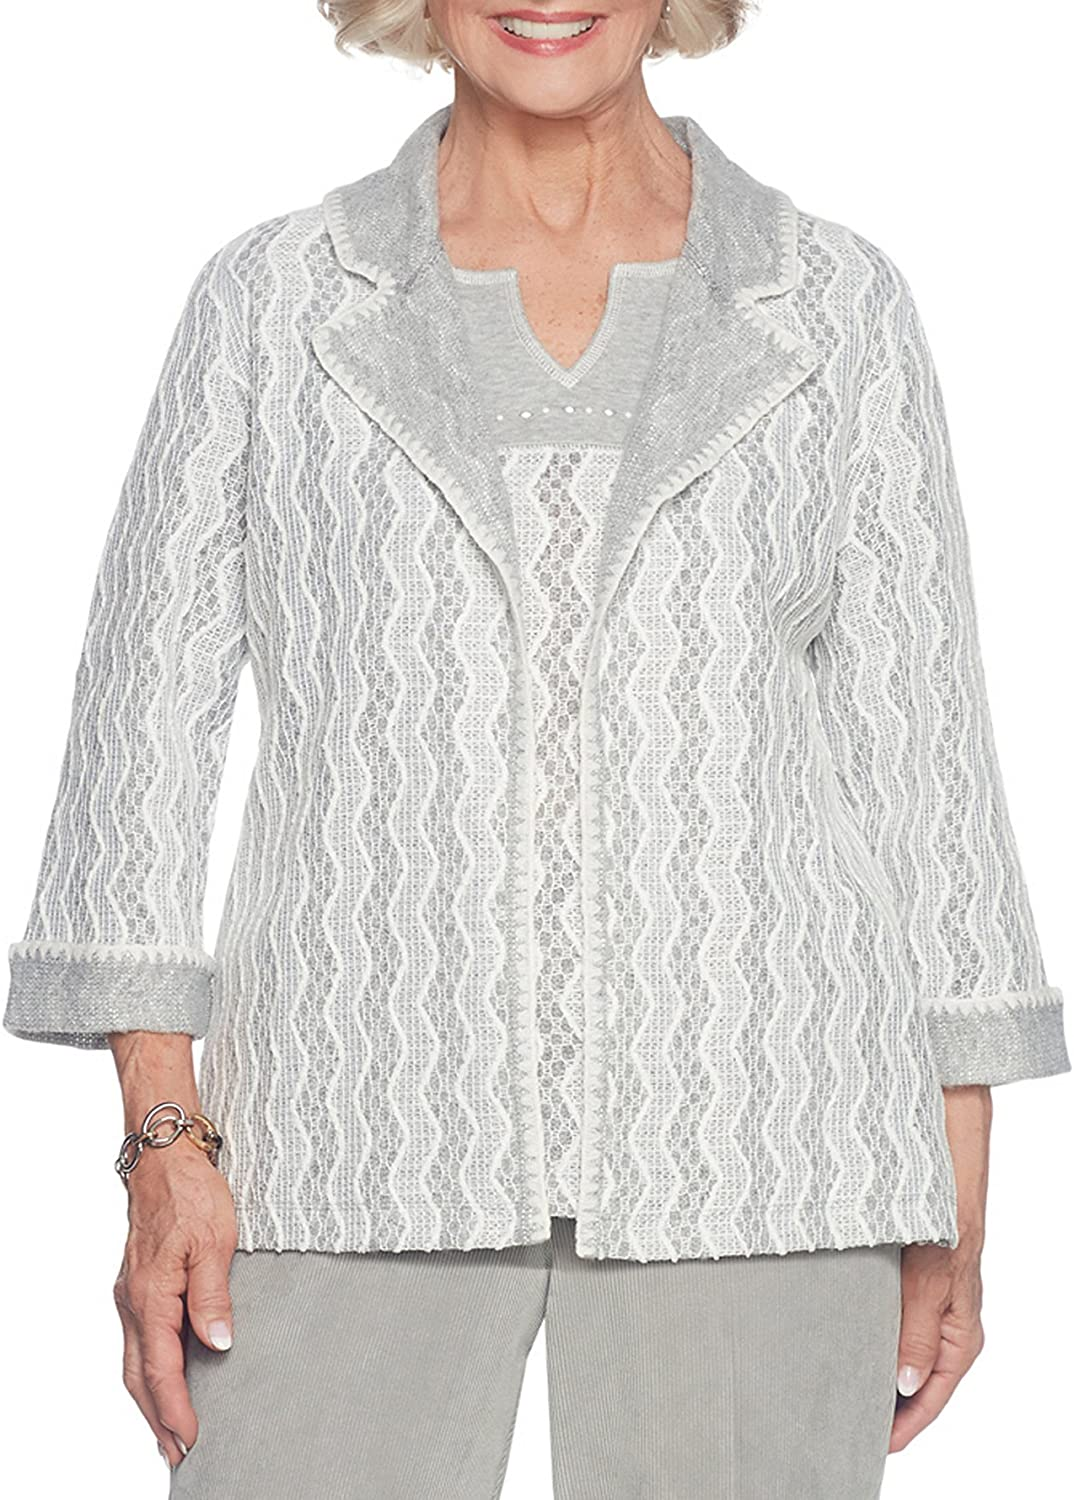 Alfred Dunner Chevron Sriped Pattern Jacket And Top Set